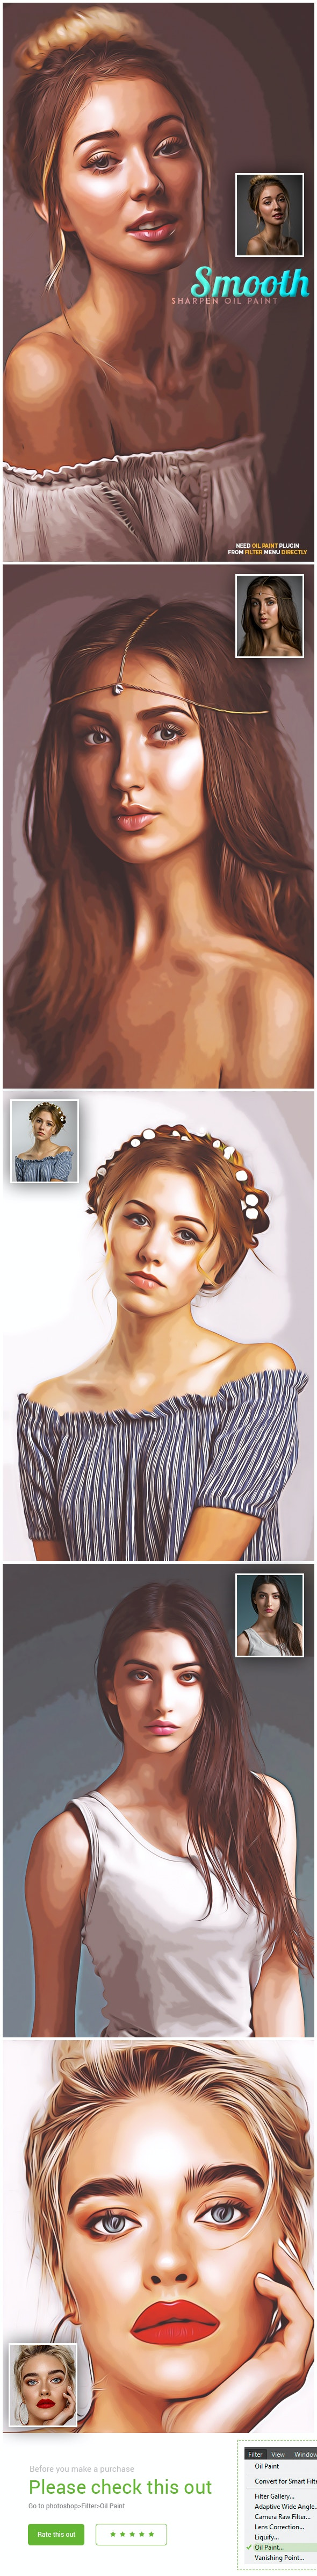 Smooth Sharpen Oil Art - Photo Effects Actions